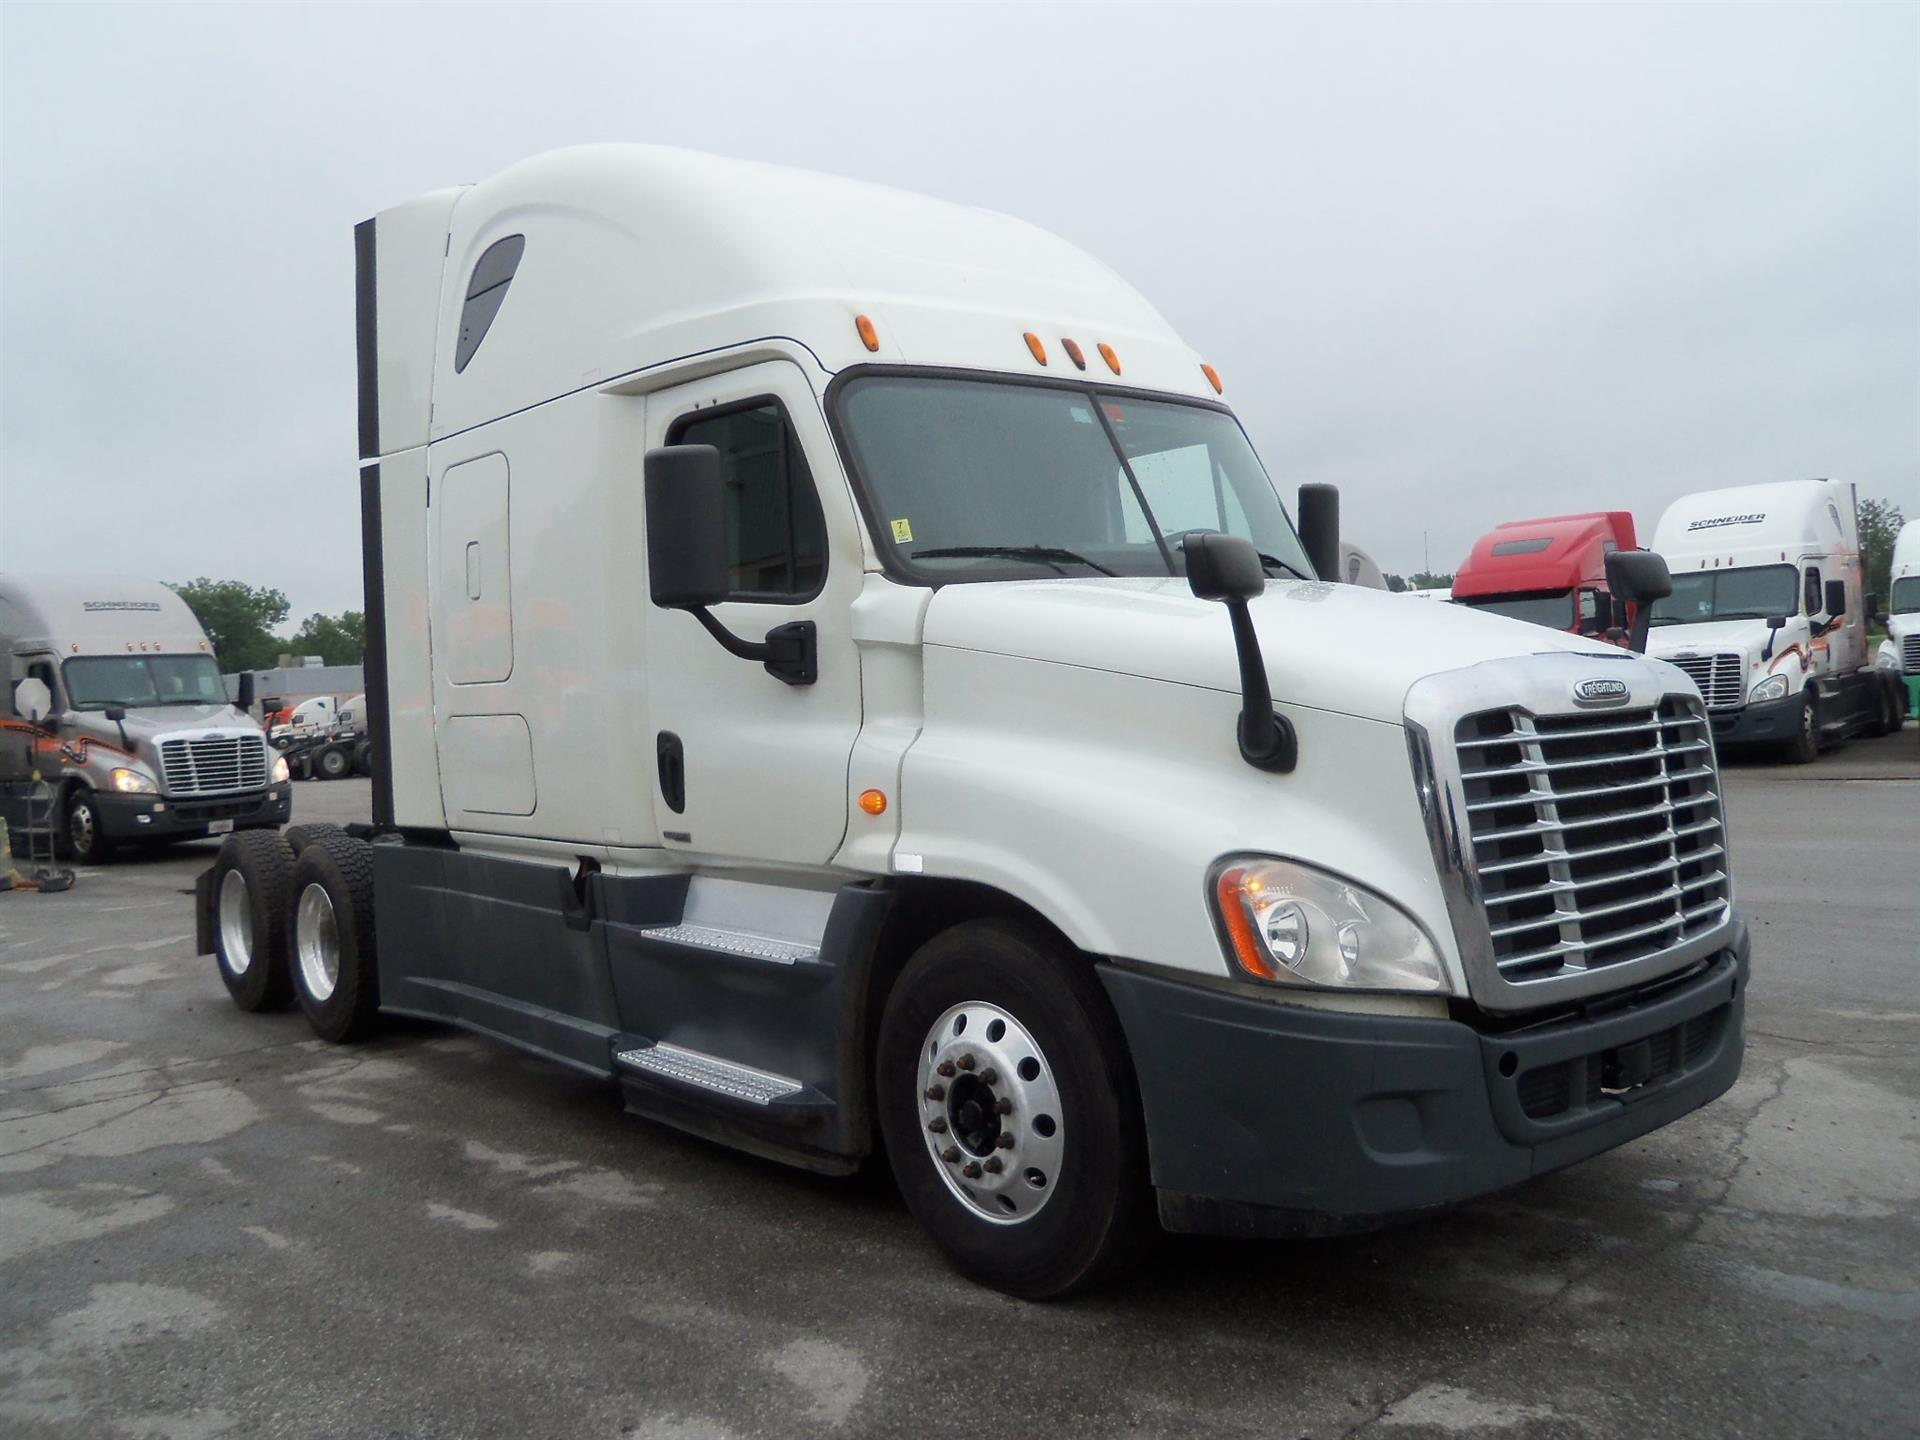 USED 2014 FREIGHTLINER CASCADIA SLEEPER TRUCK #127071